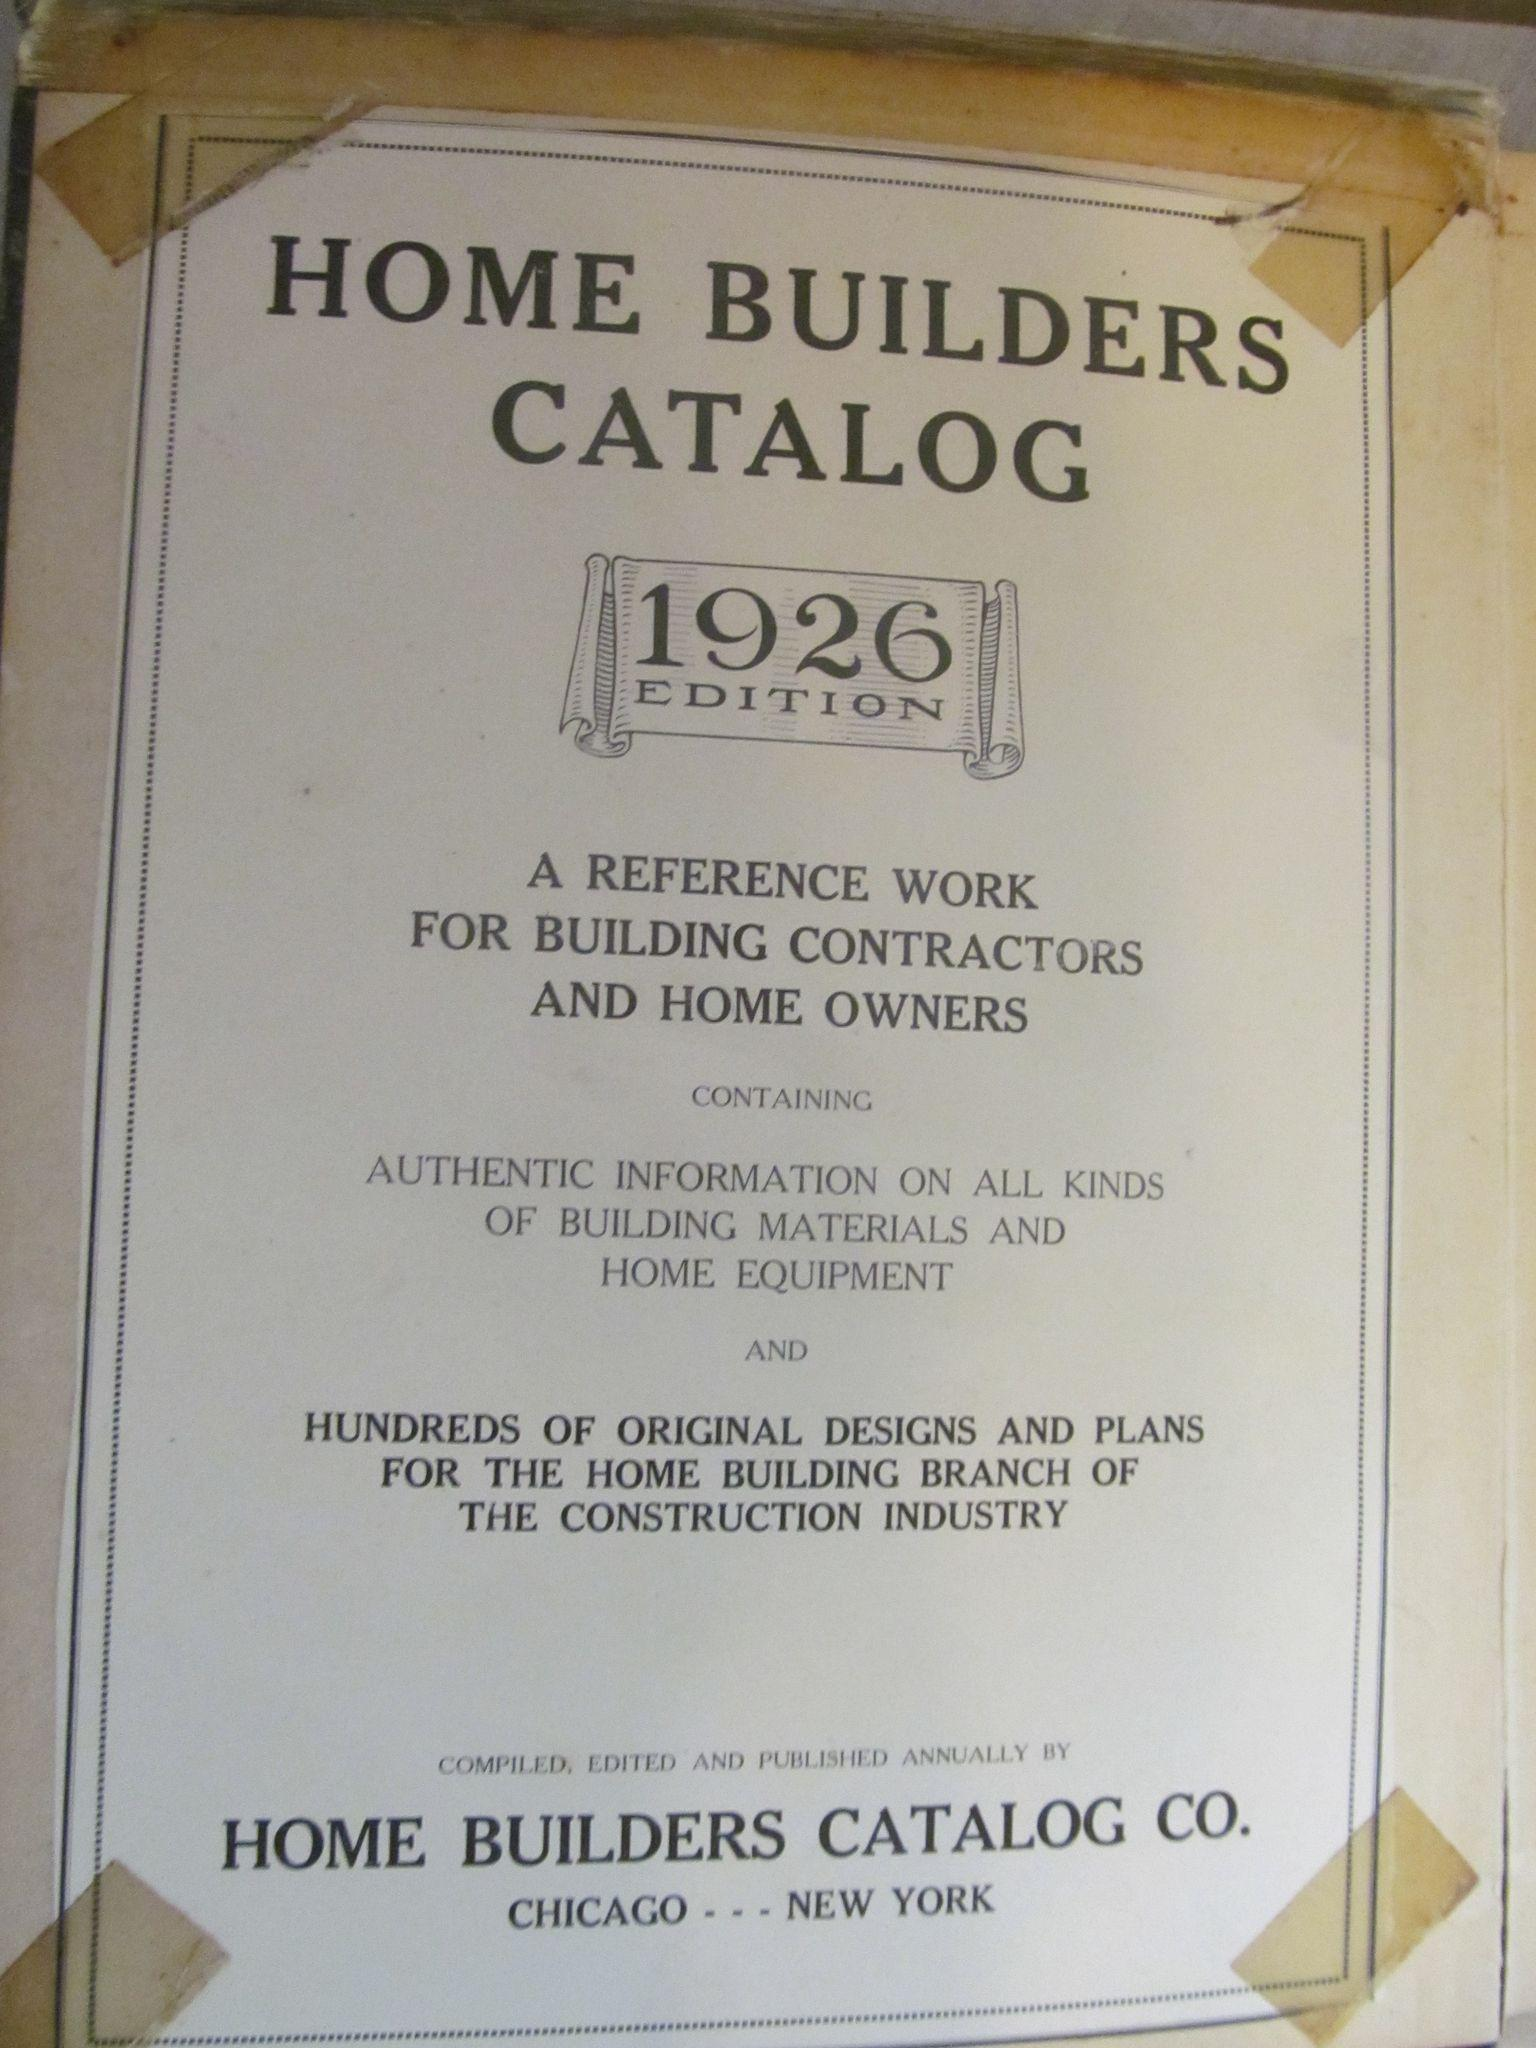 1926 Home Builders Illustrated Catalog for Building Contractors & Home Owners, Over 1000 Pages